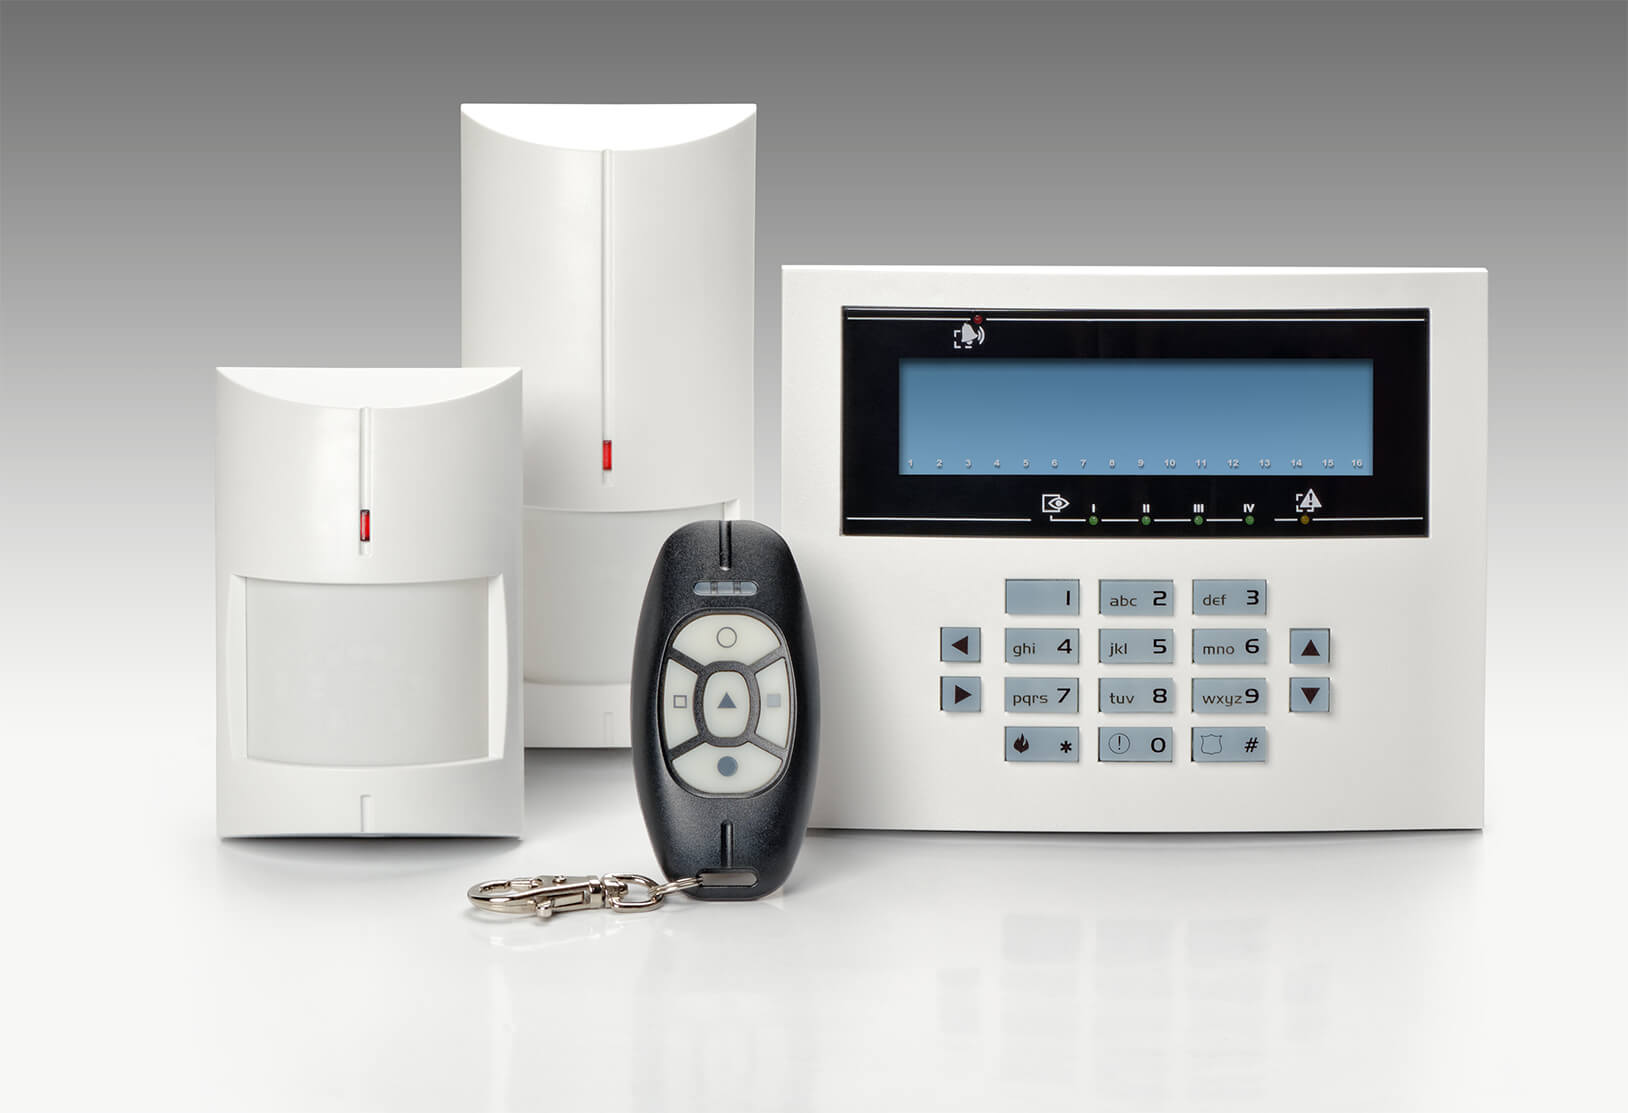 Commercial Burglar Alarms For Business in Lambeth SE12  - Local Lambeth SE12 burglar alarm company.Call 02078872244 - Dedicated to Safety & Security. Companies, shops and homes ..